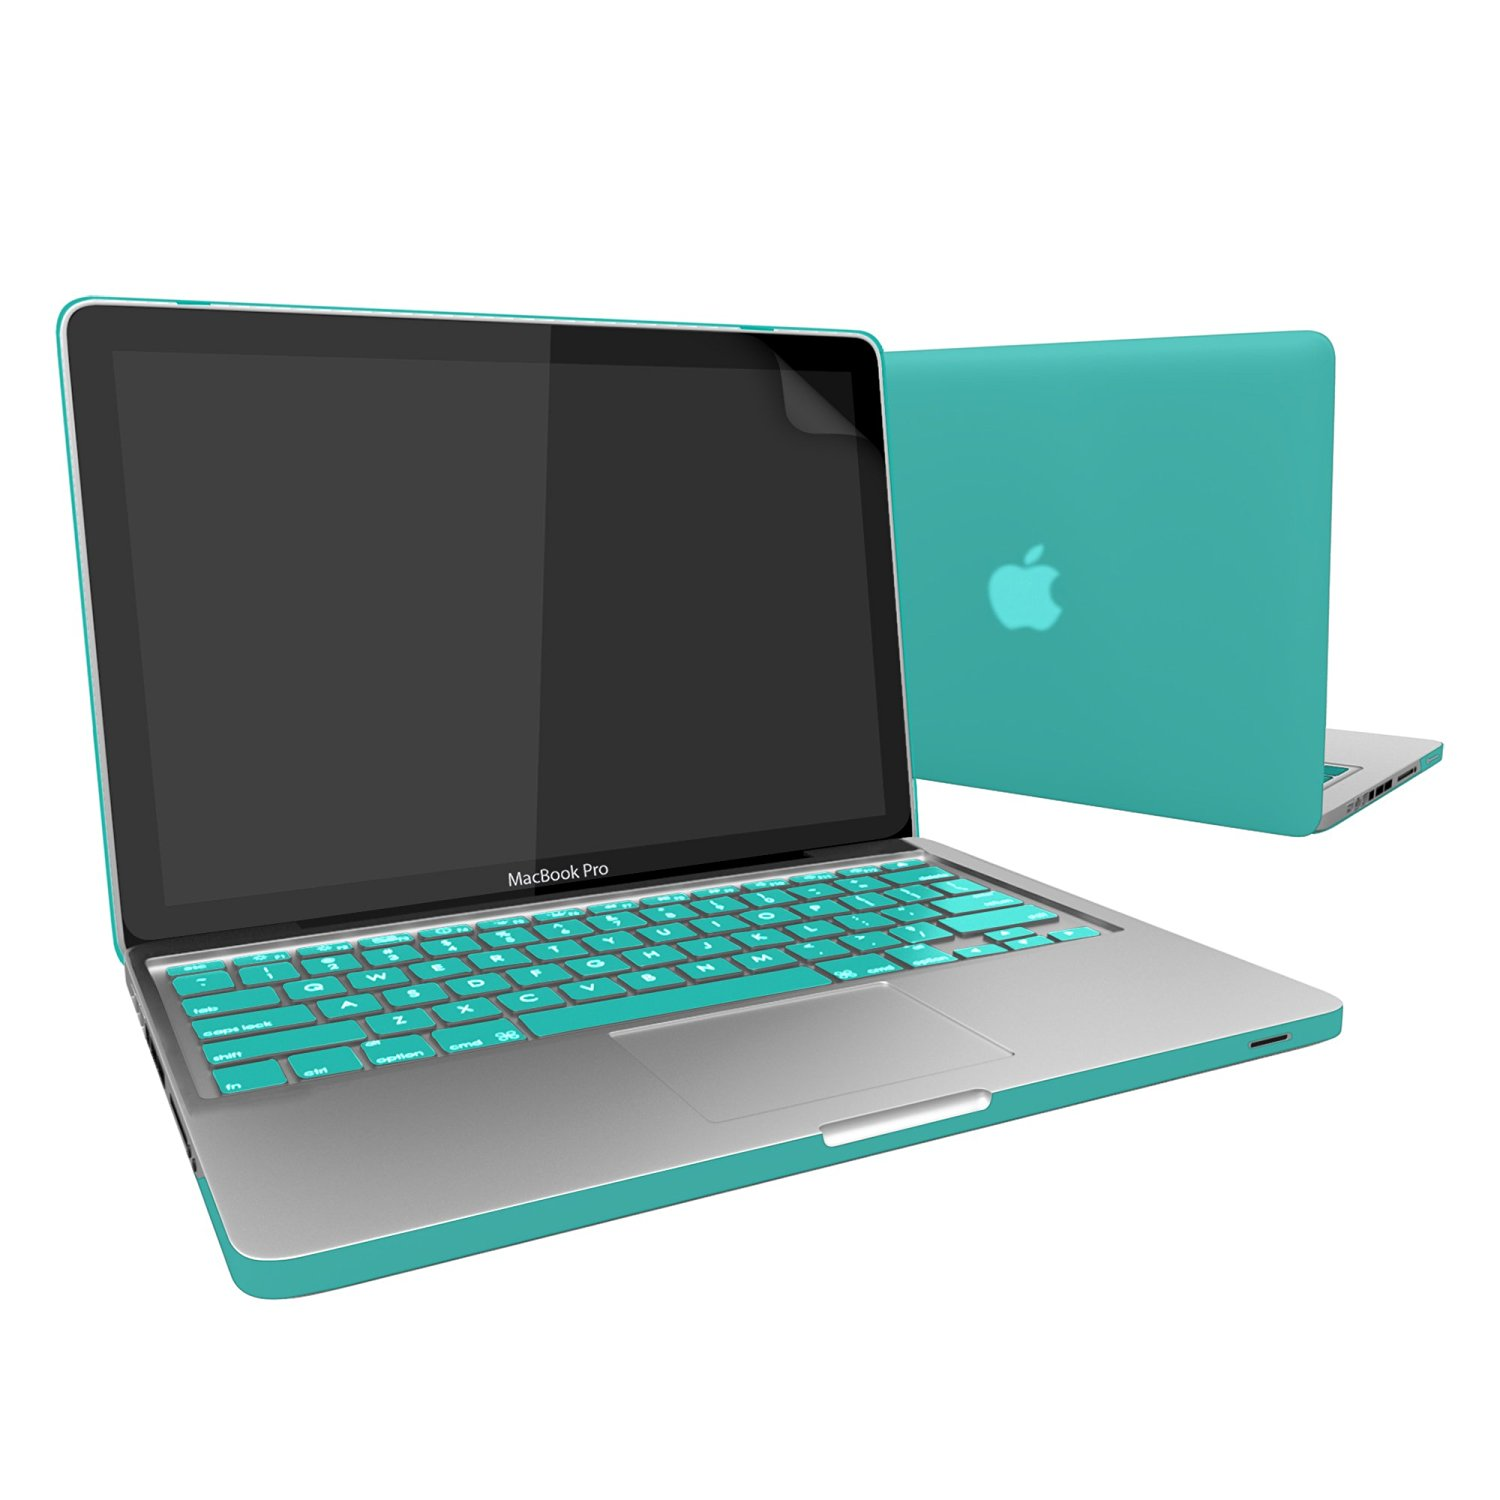 """MacBook-Pro-13, RiverPanda Matte Rubberized Hard Snap-On Case Cover for Apple MacBook Pro 13"""" with Keyboard Skin & Screen Protector Fits Model A1278 - Turquoise Blue"""